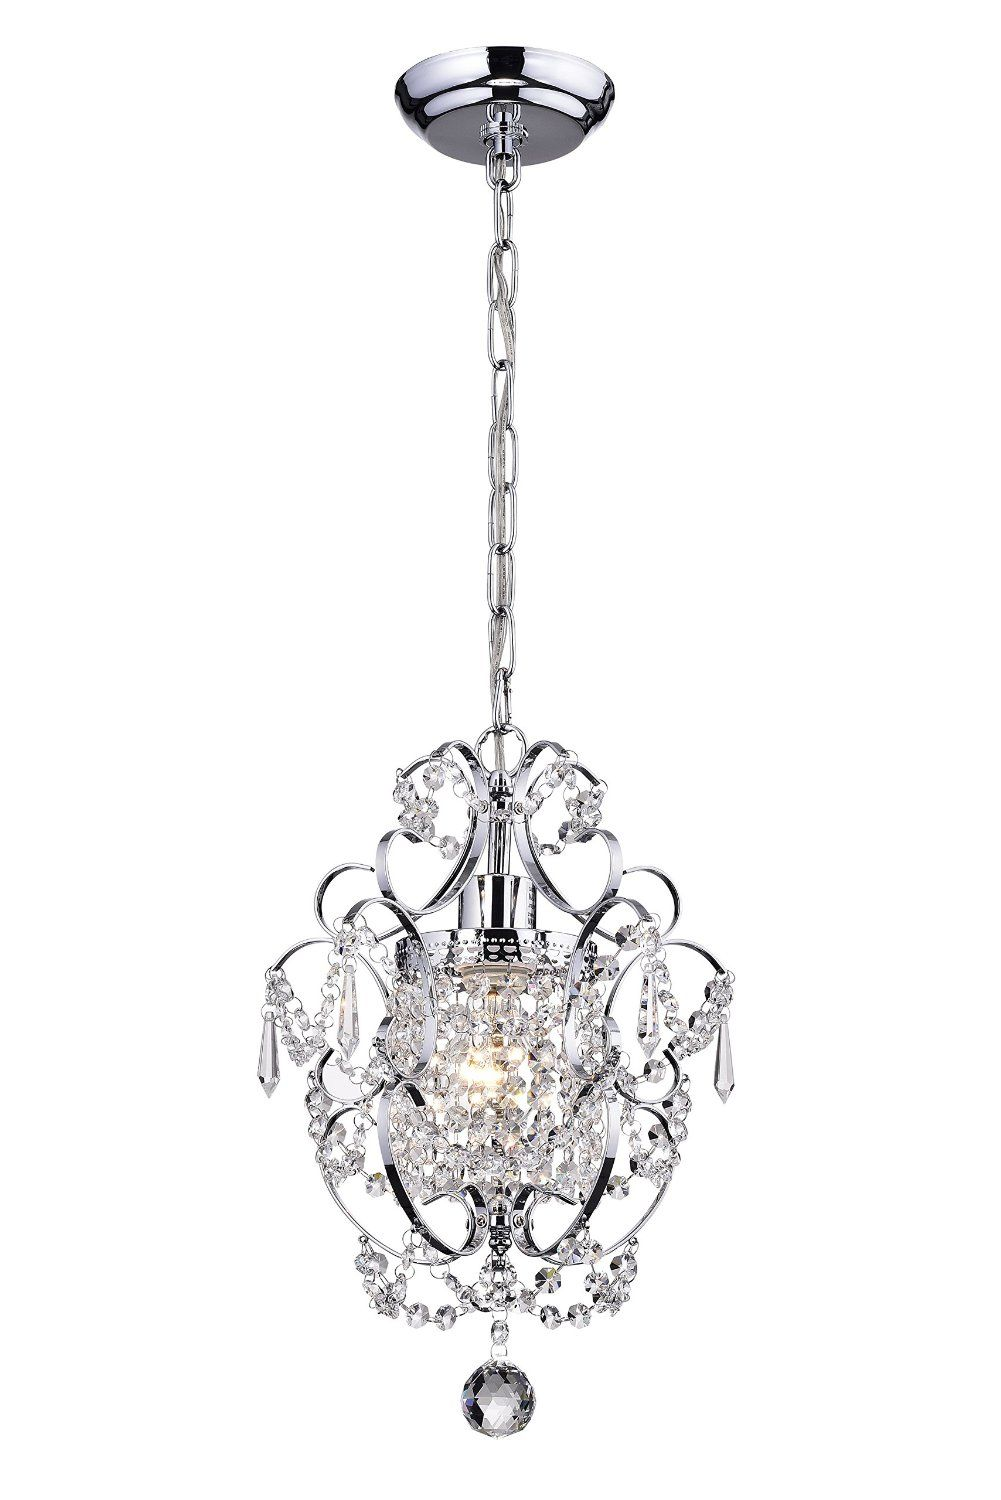 on sale 91585 e726f Amorette Chrome Finish Mini Chandelier Wrought Iron Ceiling ...